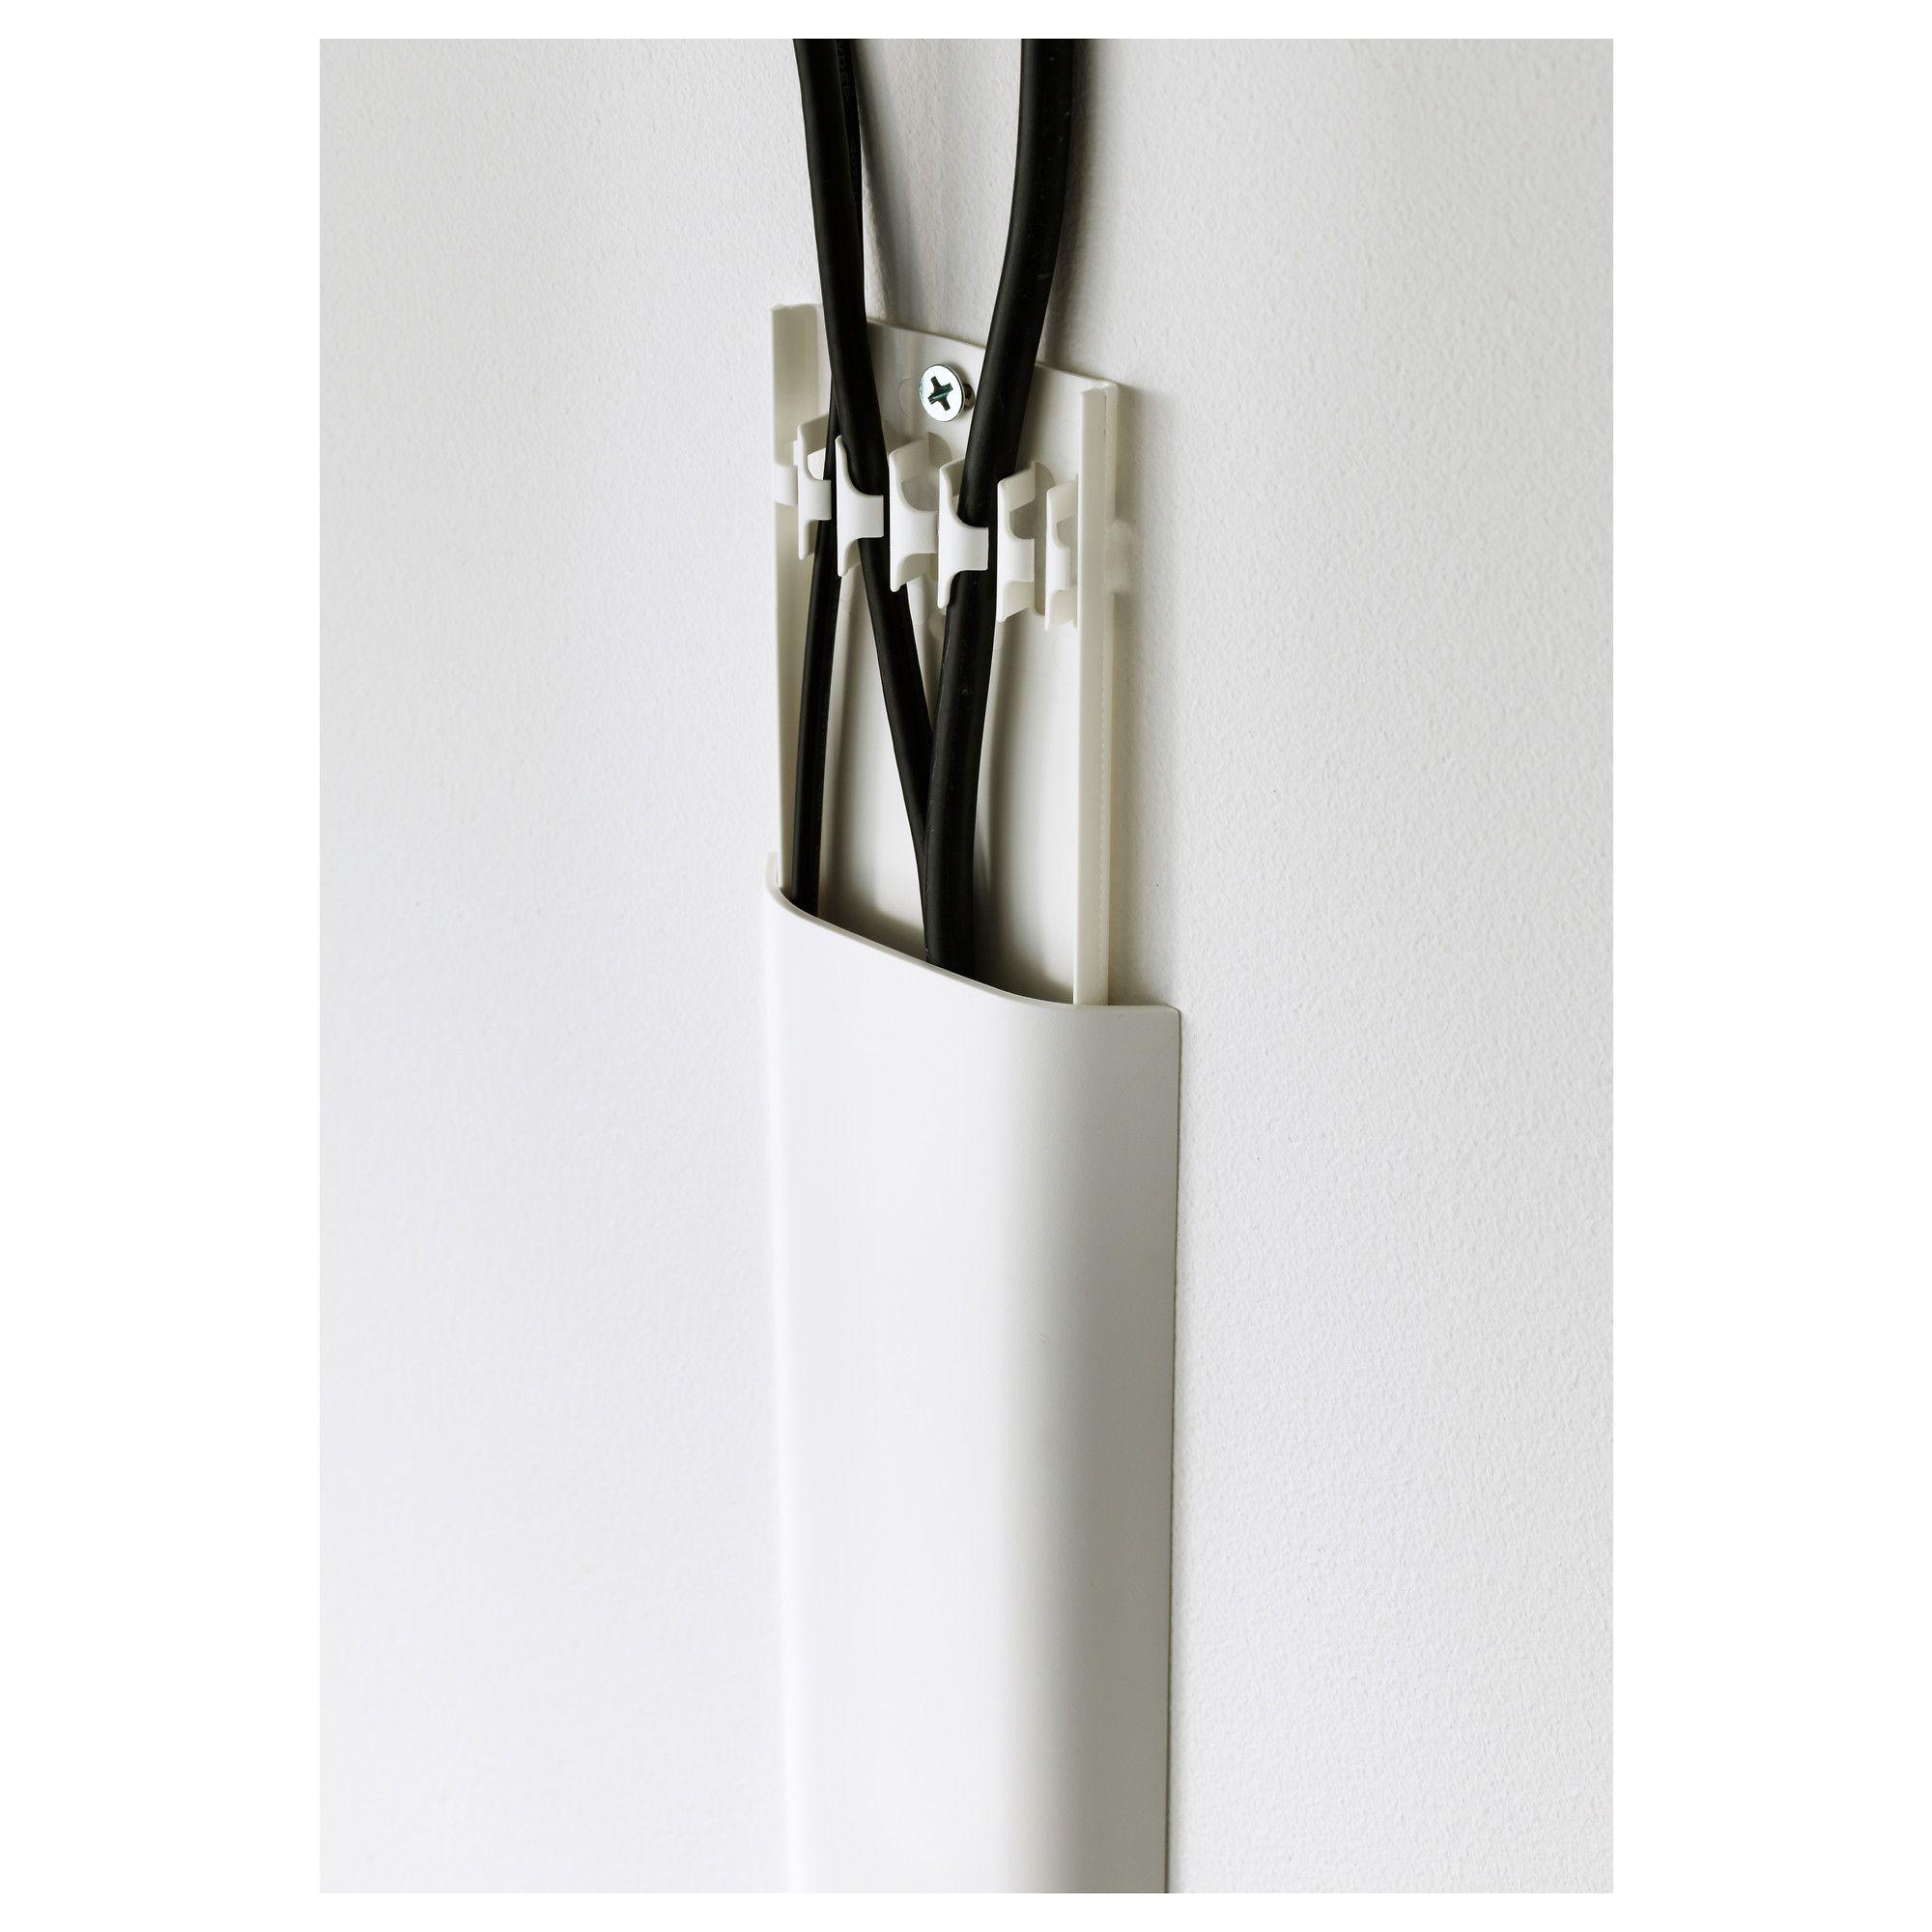 Betthaupt Ikea Ikea Uppleva Cord Cover Strip White In 2019 Products Cable